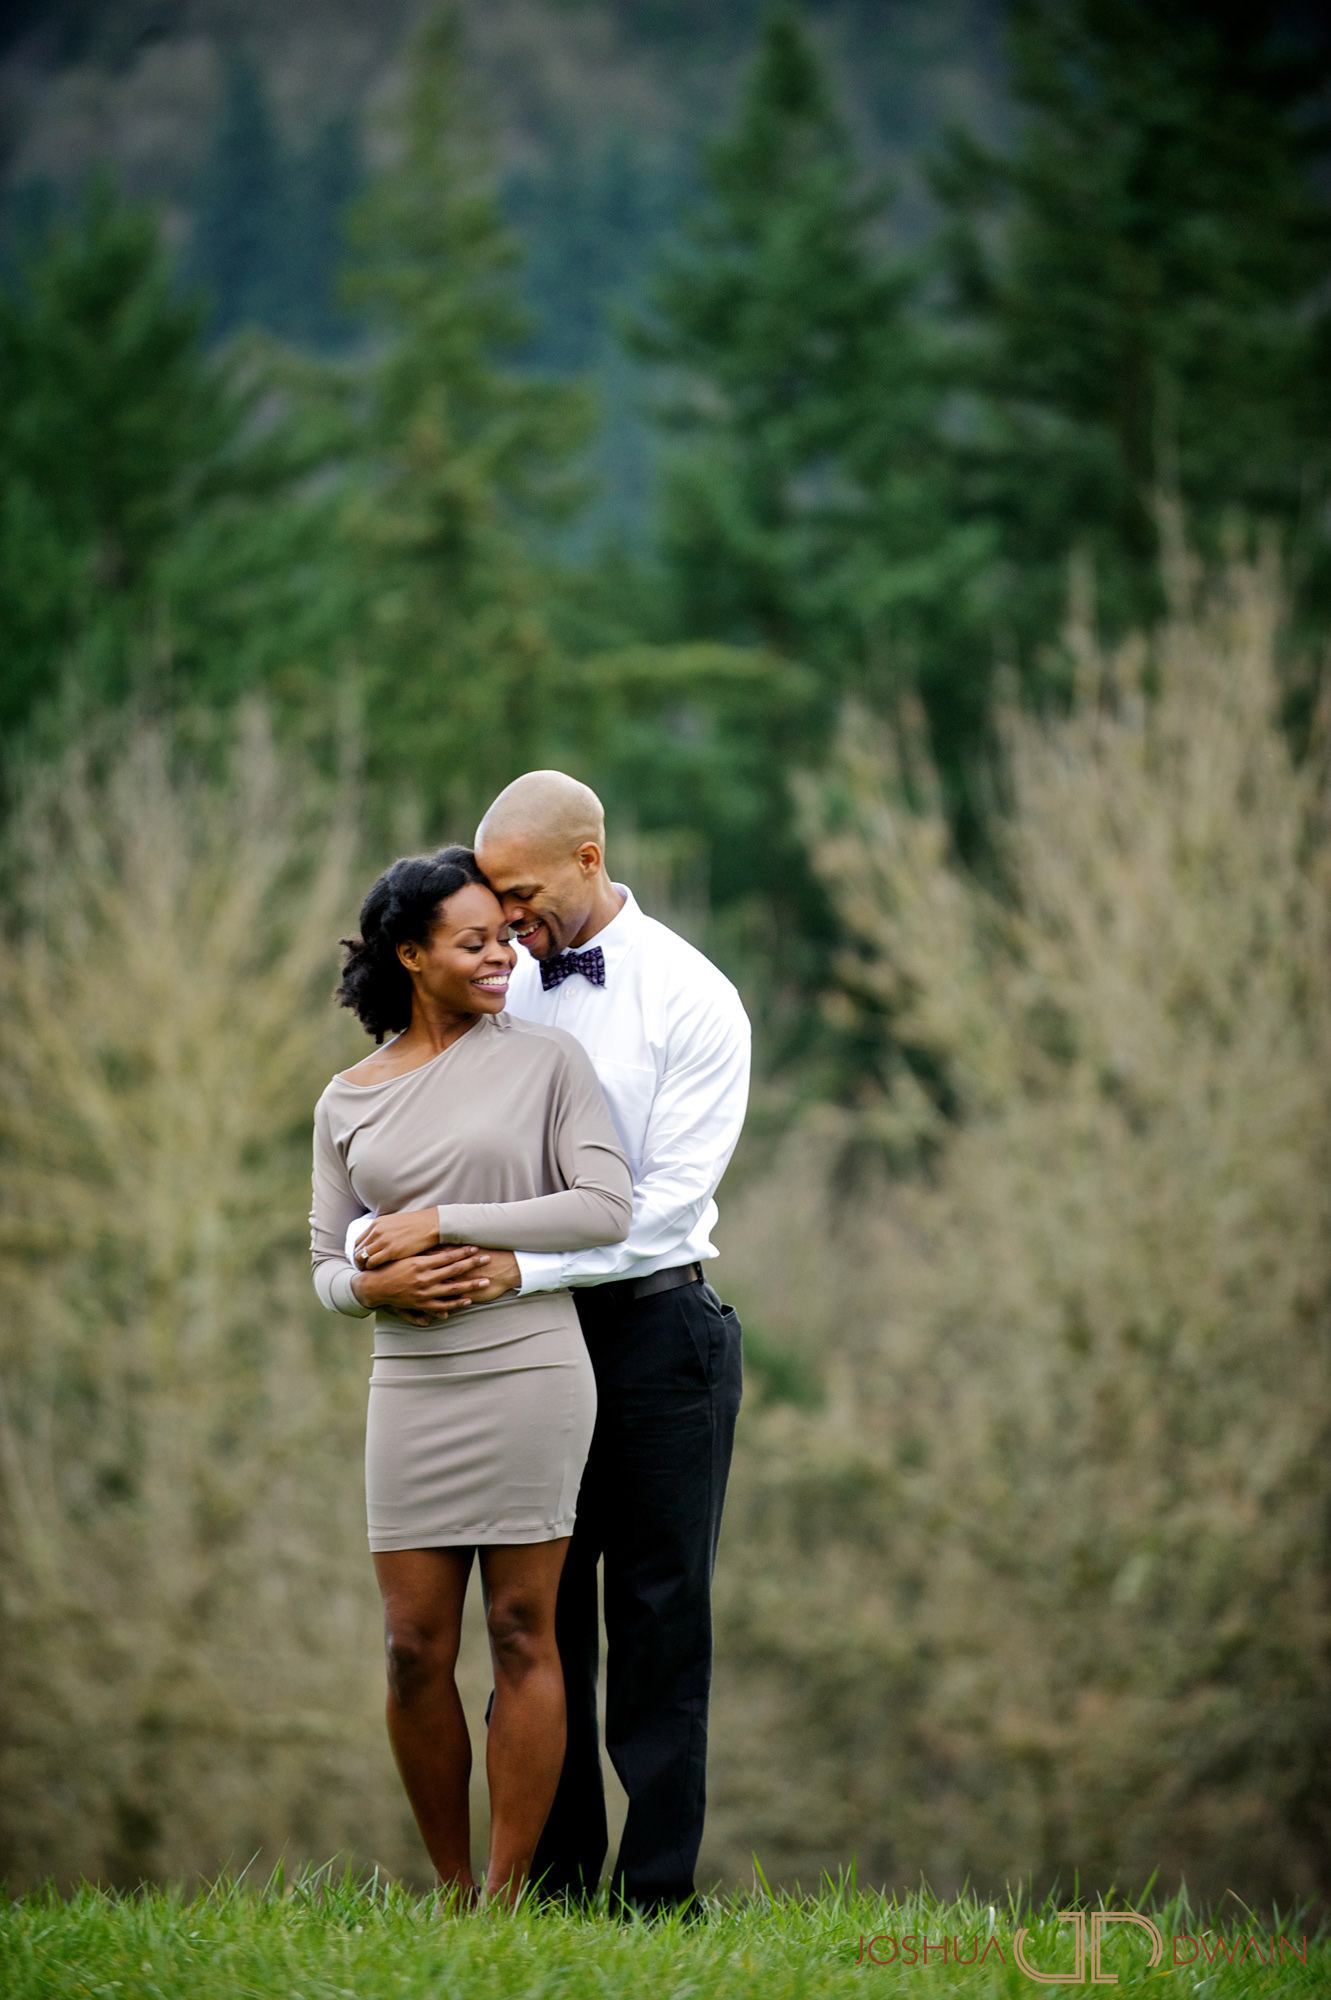 marnel-matthew--016-portland-oregon-engagement-photographer-joshua-dwain-20110305_mm_324